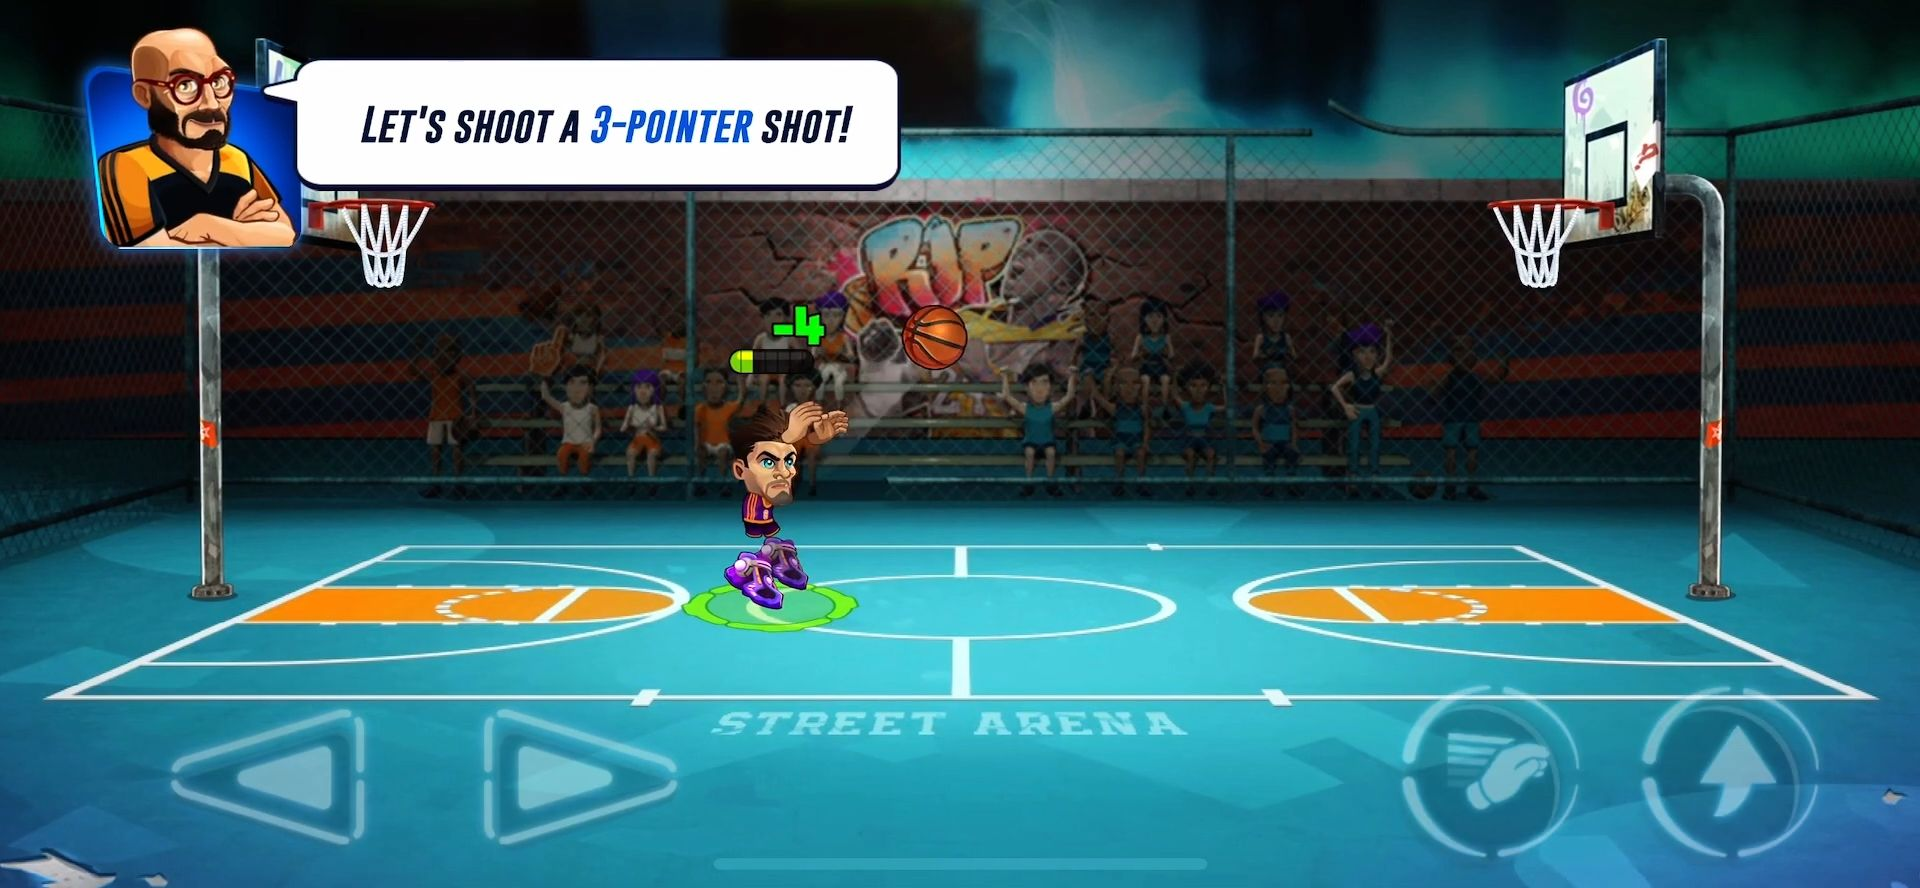 Basketball Arena for Android